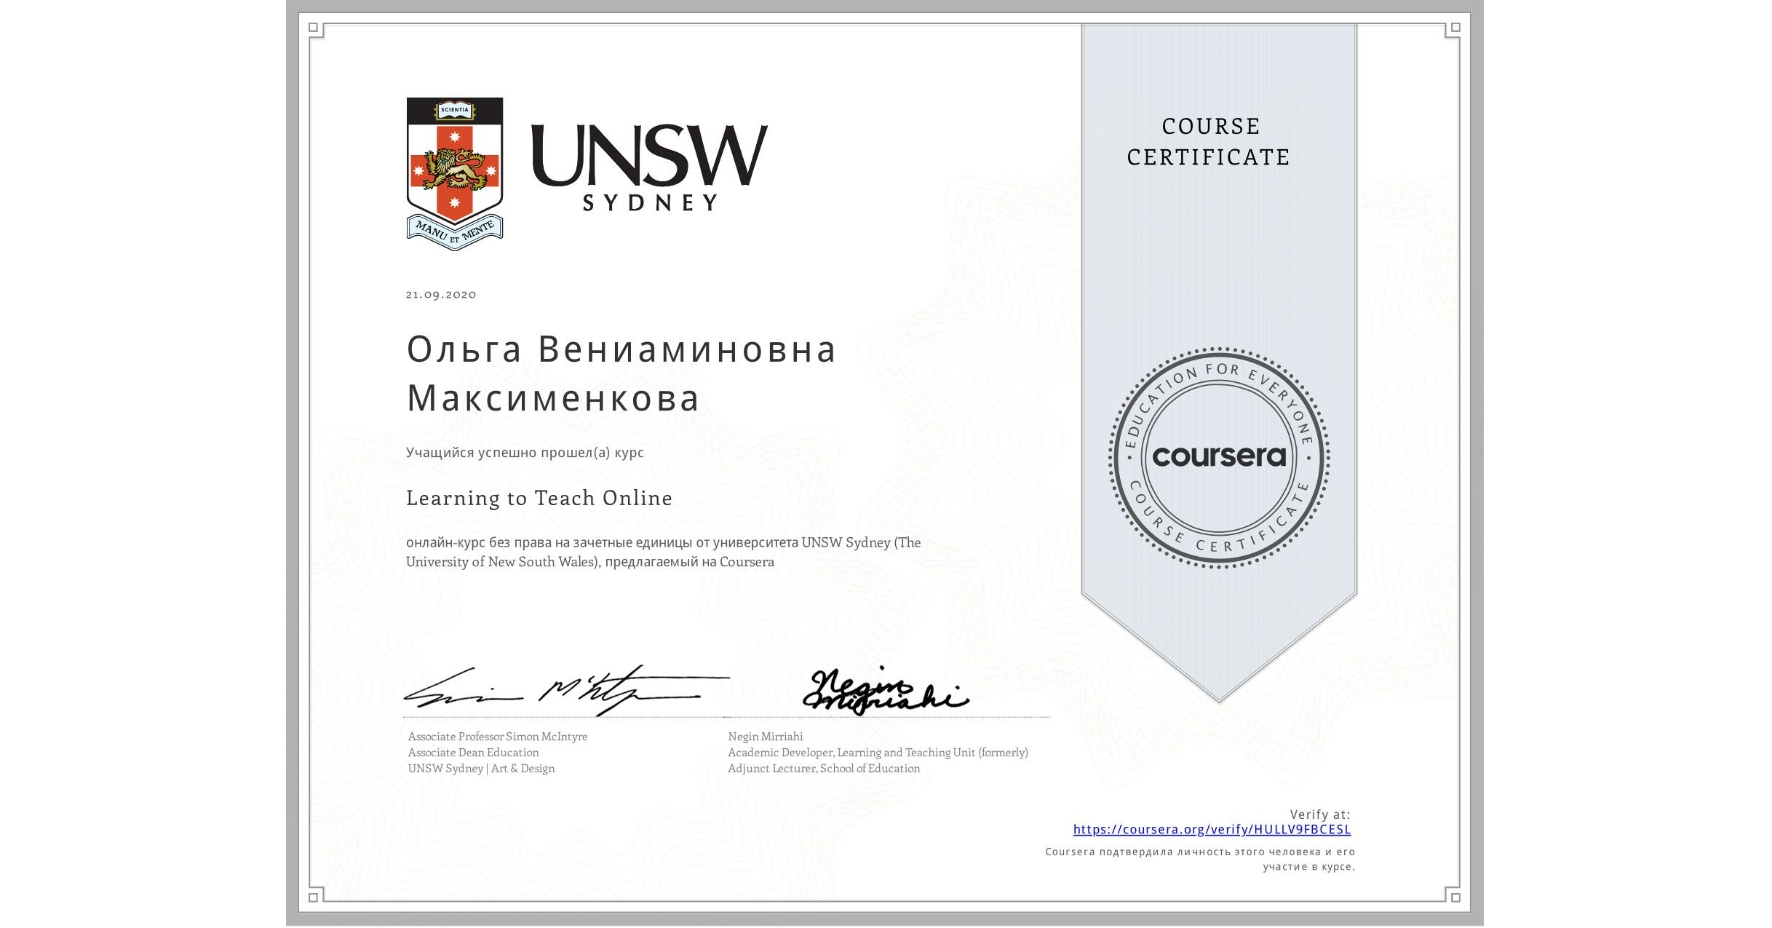 View certificate for Ольга Вениаминовна Максименкова, Learning to Teach Online, an online non-credit course authorized by UNSW Sydney (The University of New South Wales) and offered through Coursera